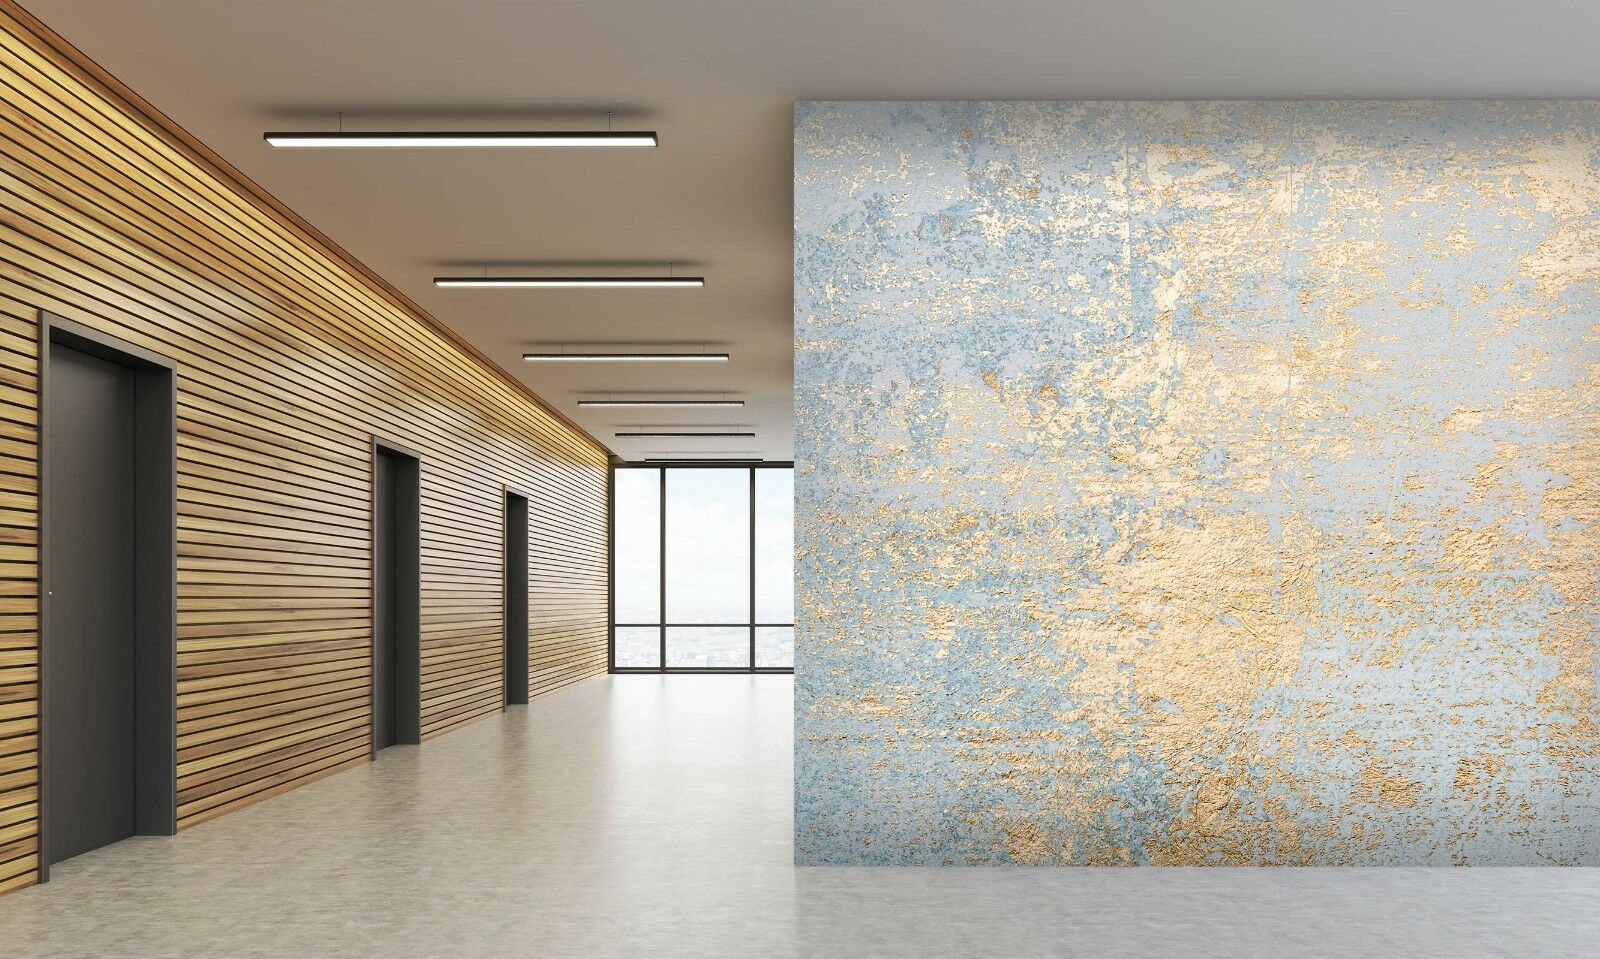 3D Abstract Gold 511 Texture Tiles Marble Wall Paper Decal Wallpaper Mural